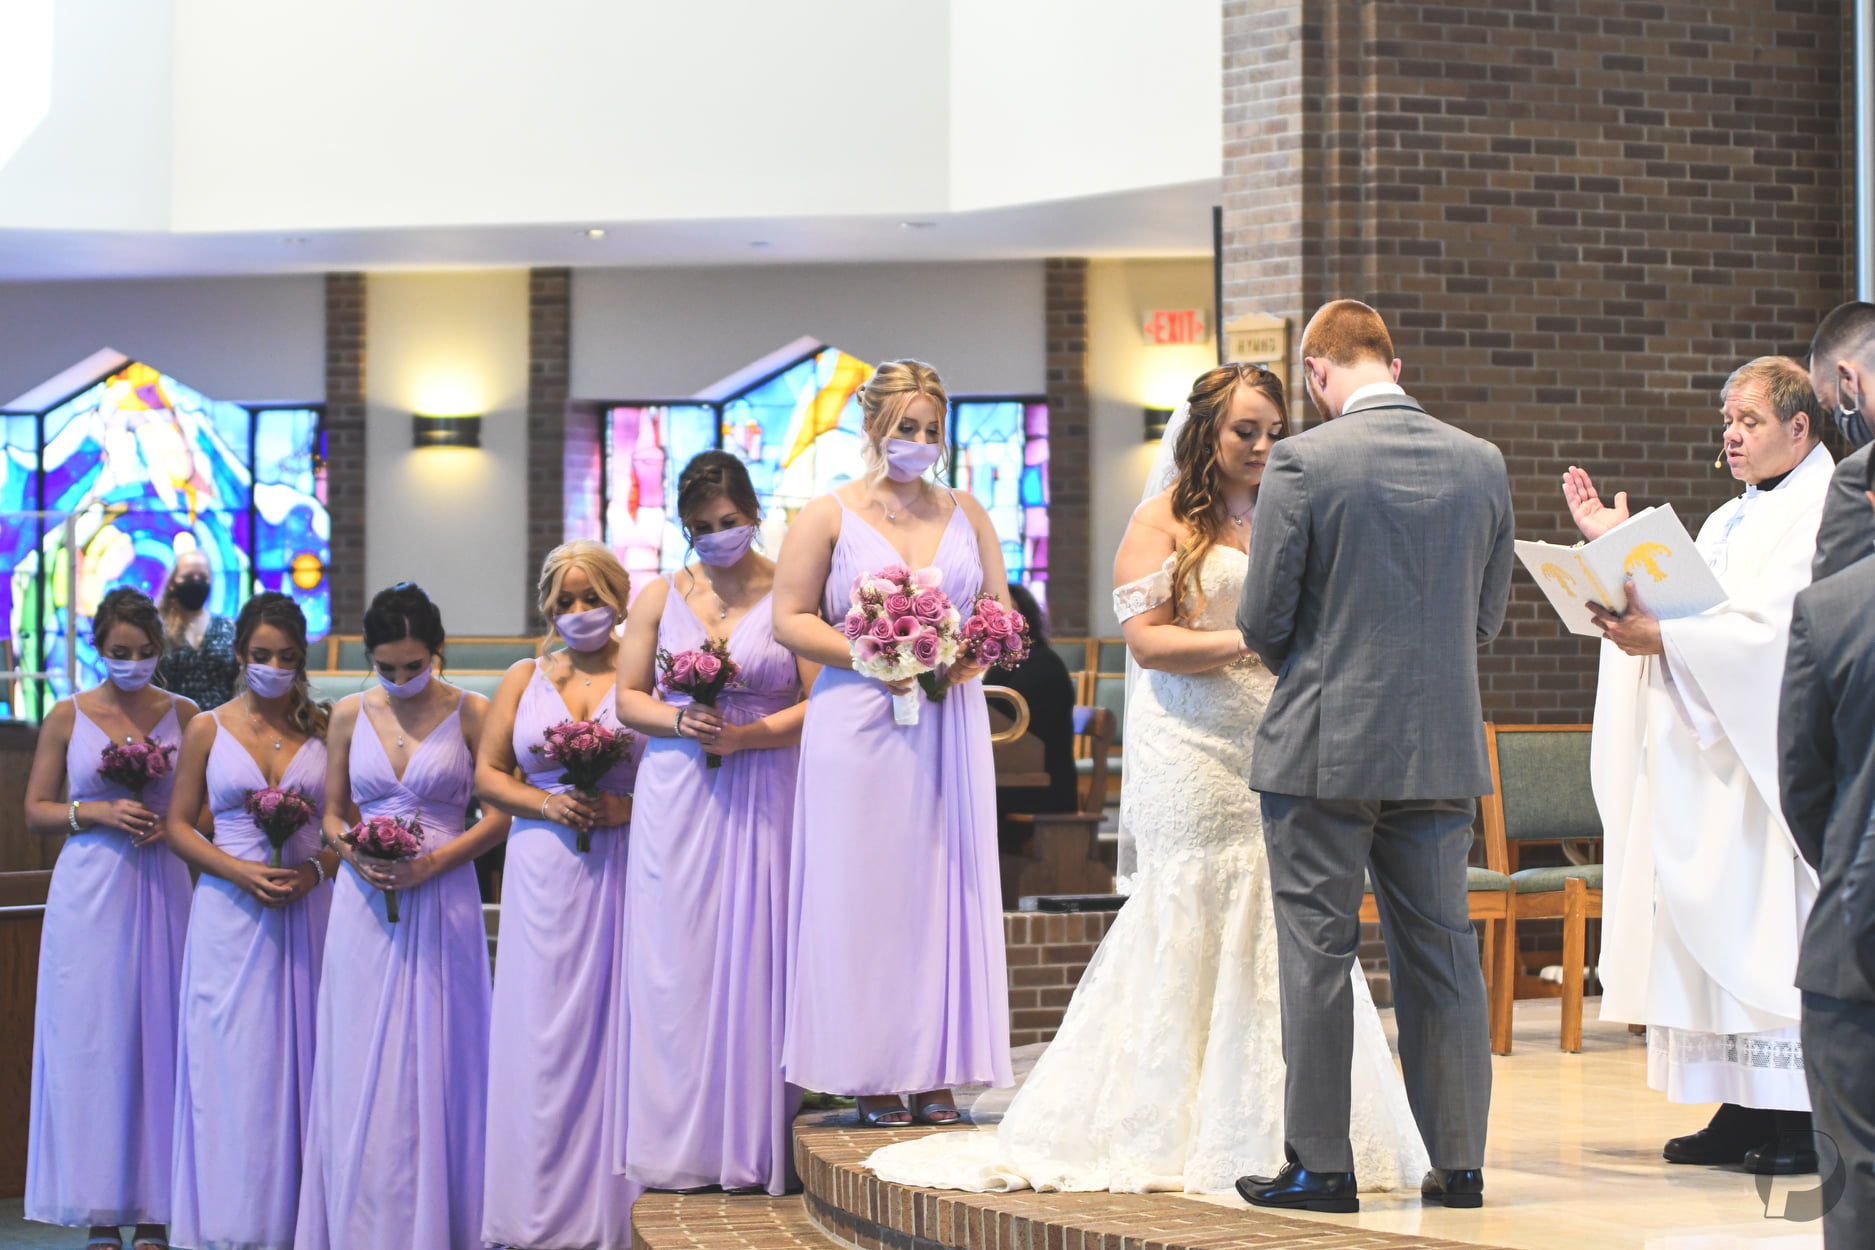 Wedding Planning During A Pandemic How 4 N J Couples Dealt With The Madness Nj Com